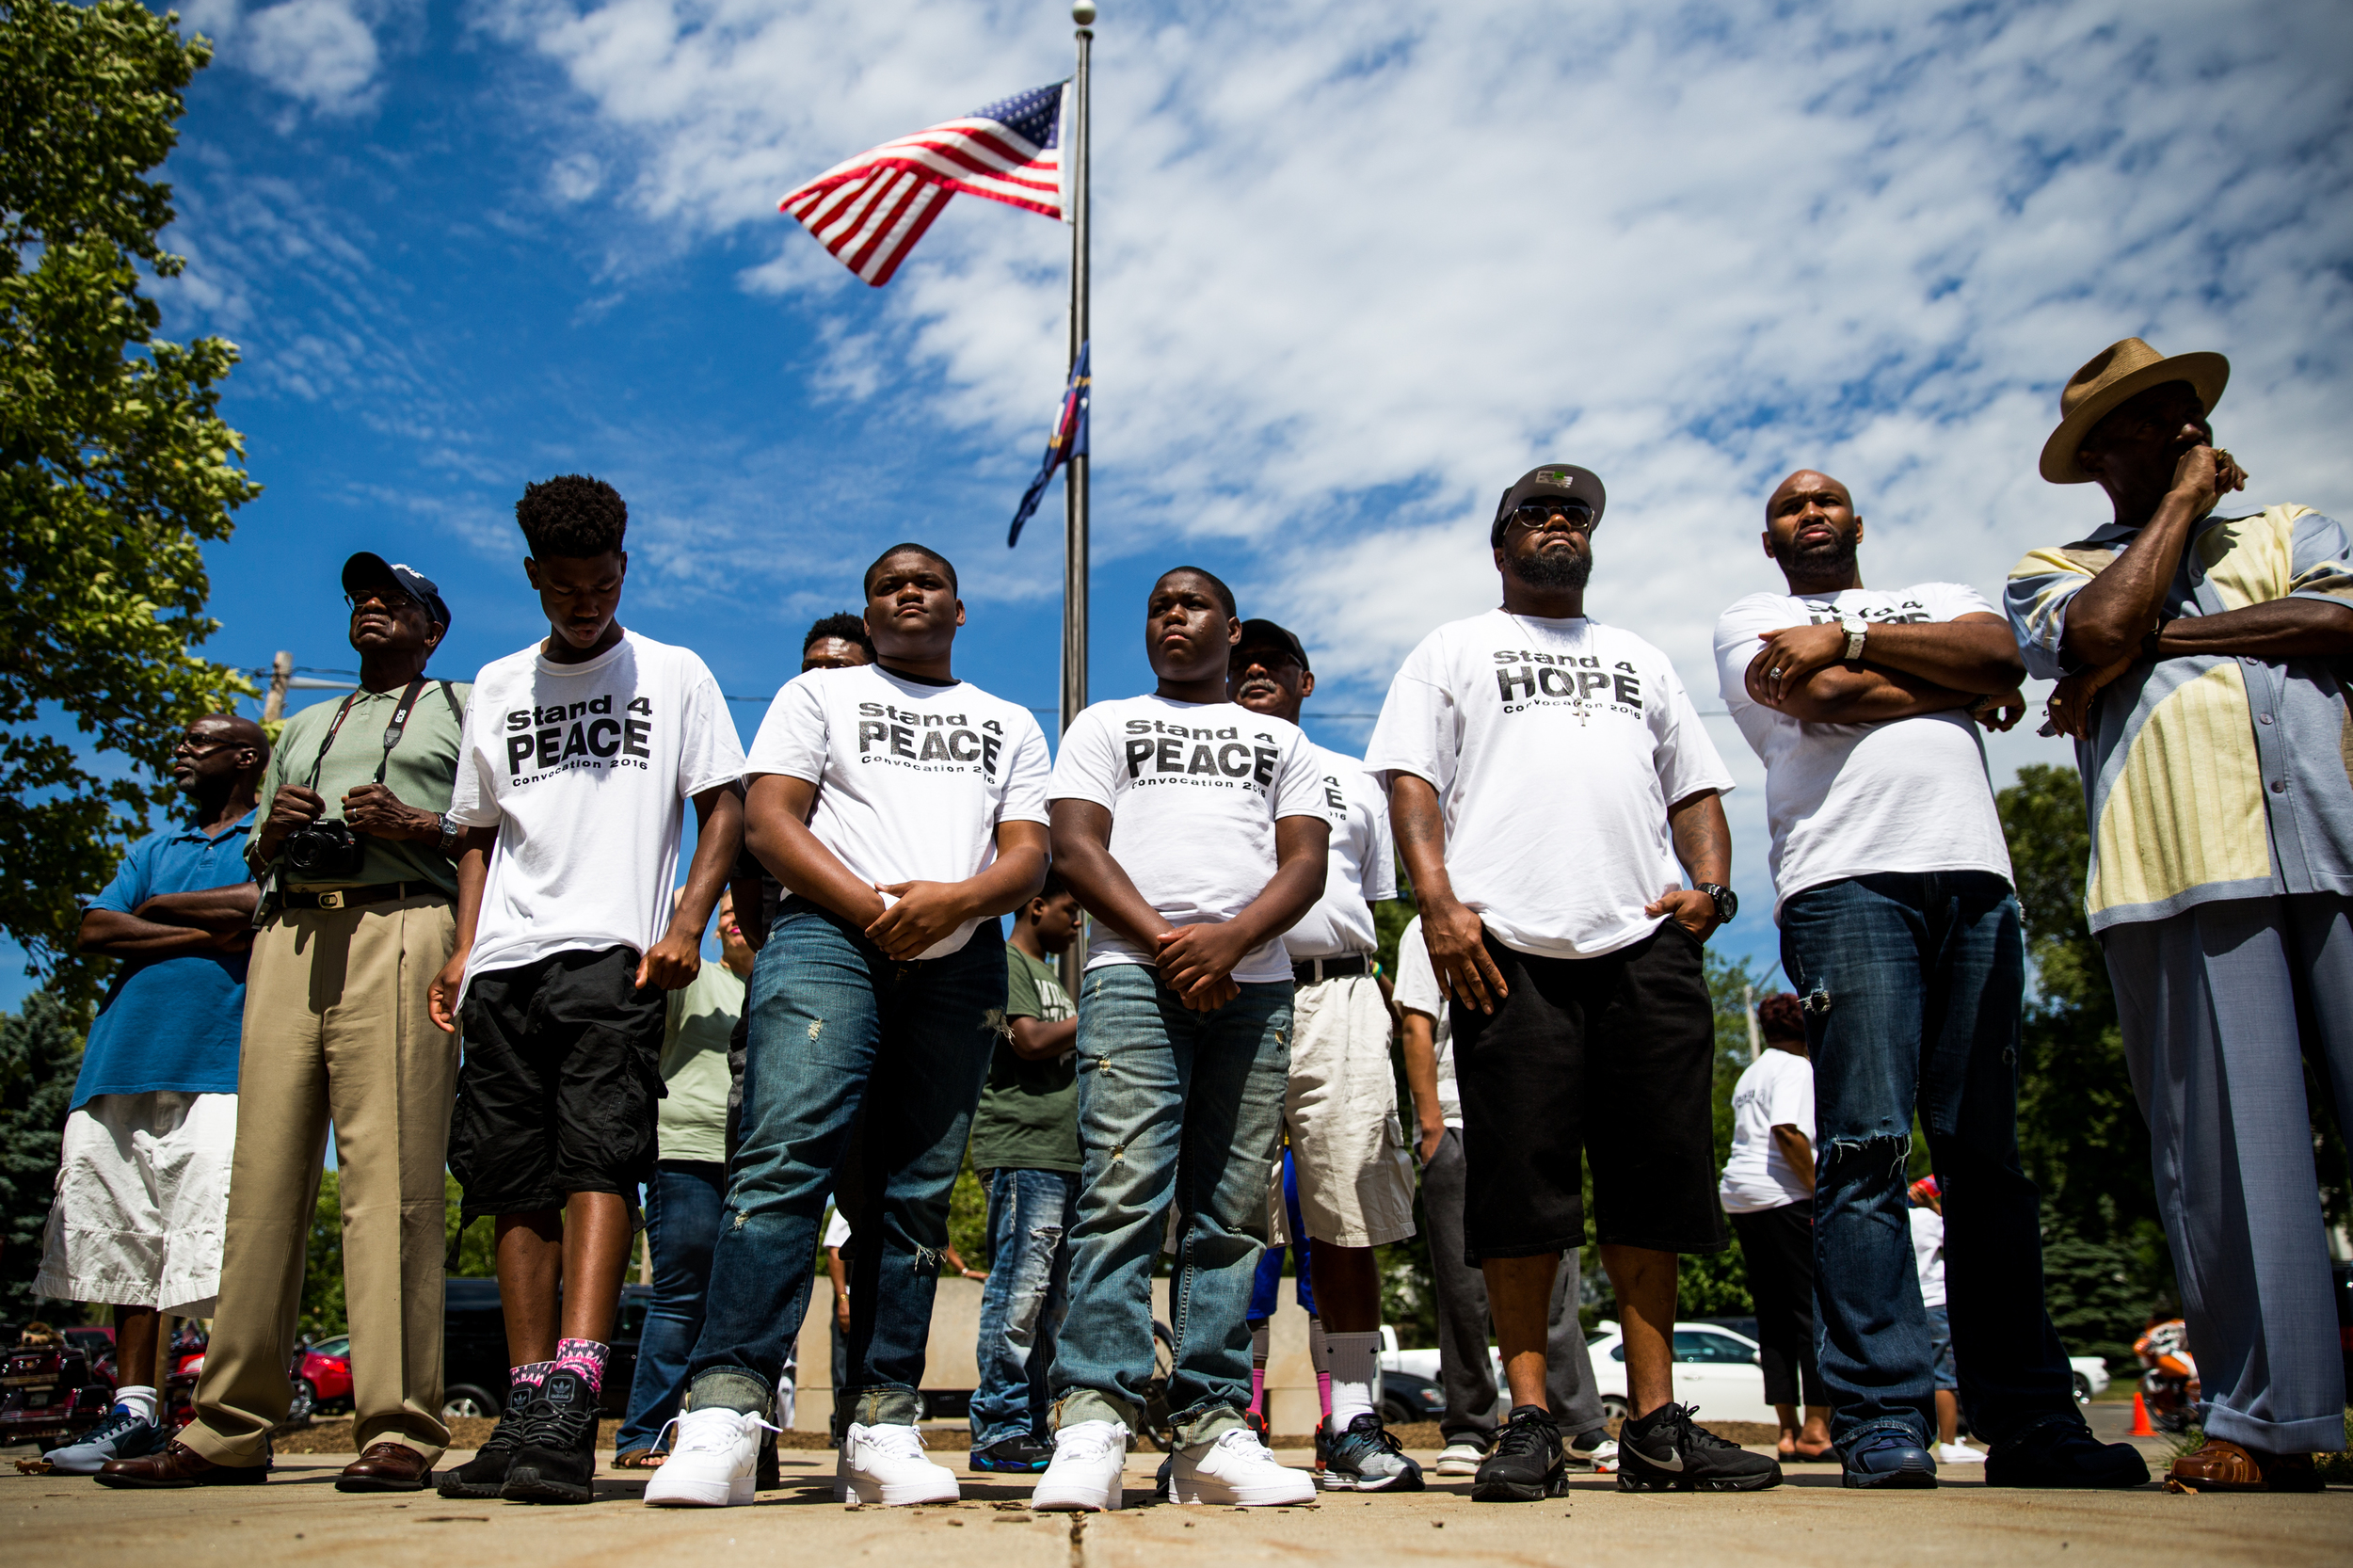 The community of Flint gathers with law enforcement officers outside the Genesee County Jail during a protest organized by Ebenezer Ministries on Sunday, July 17, 2016 in downtown Flint. The protest promoted unity and respect between the community and law enforcement officers after the Baton Rouge shooting that left three police officers dead.